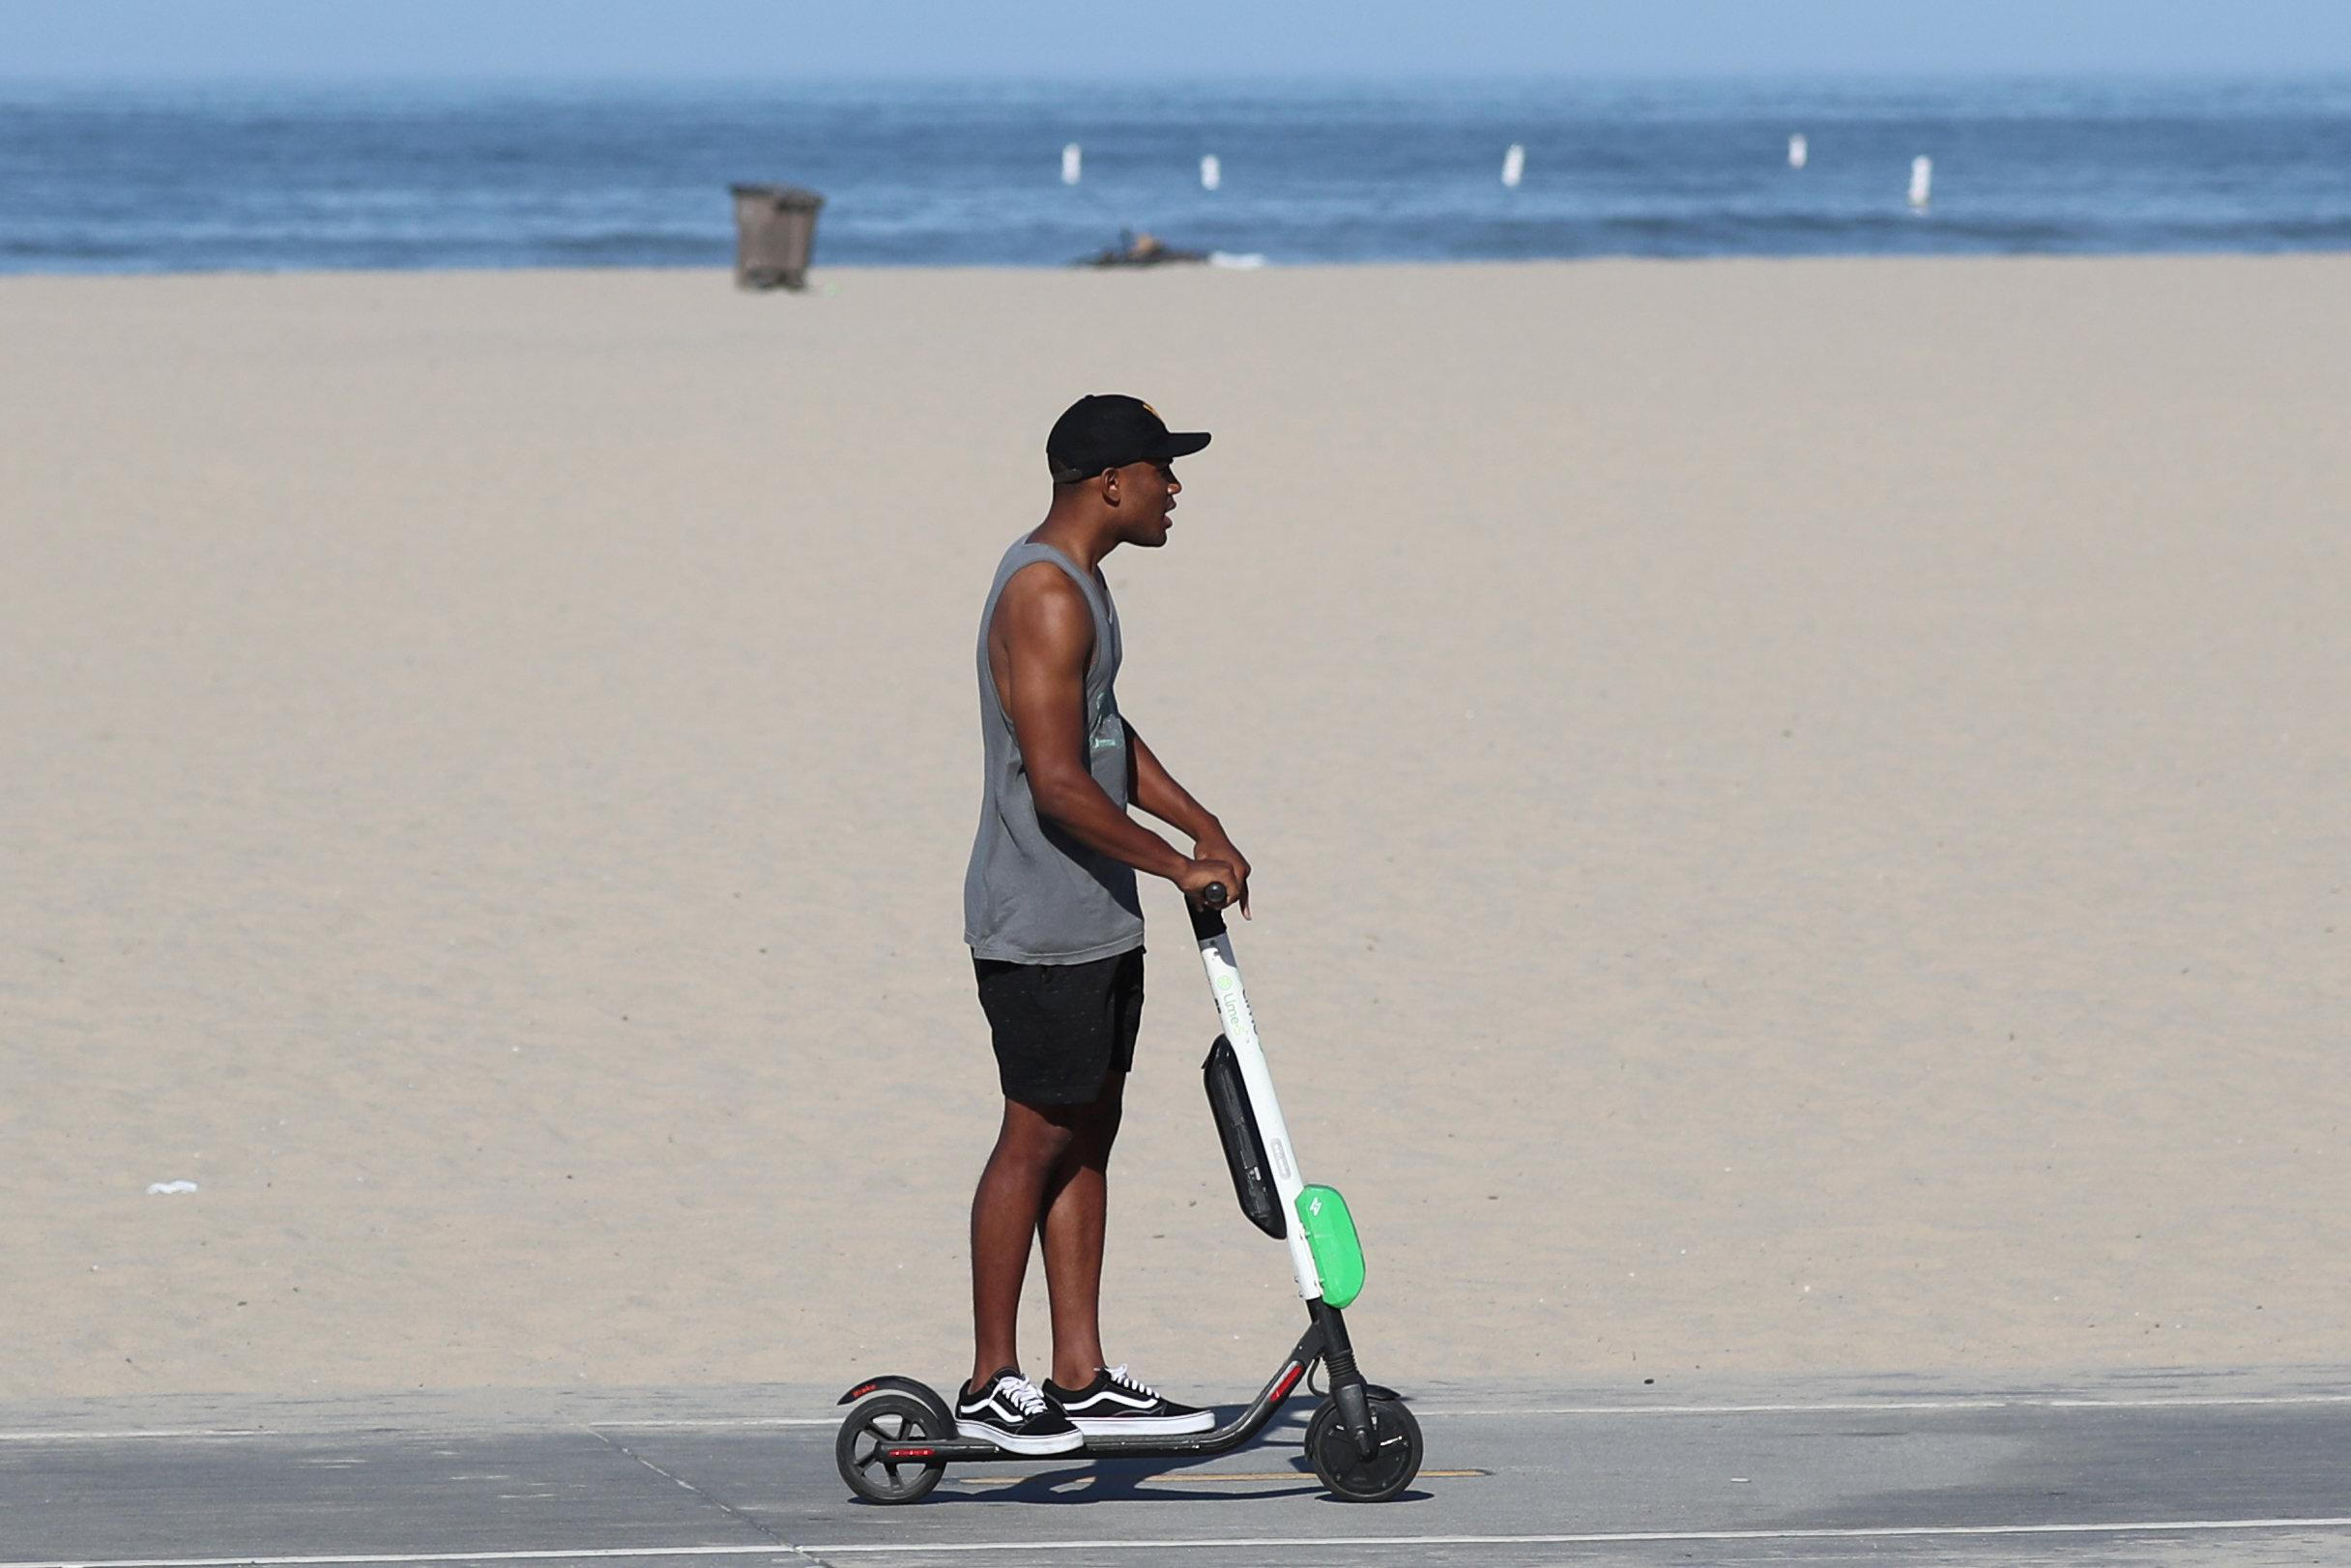 Scooter companies ride high on hope and hype - Reuters